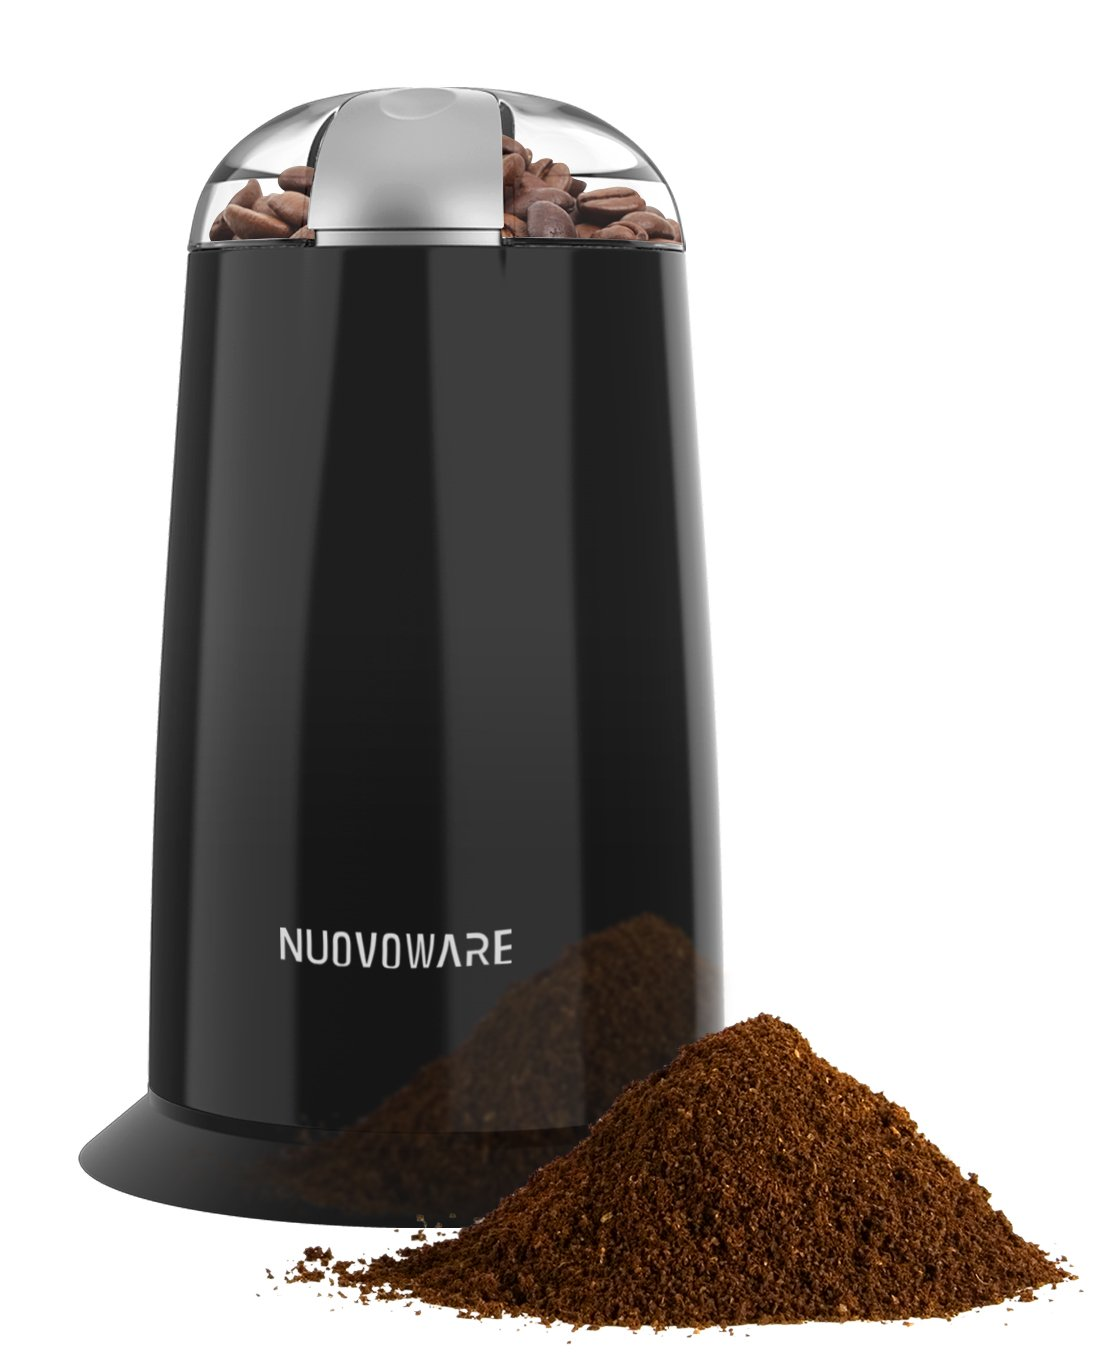 Nuovoware Coffee Grinder Black Automatic Premium Electric Spice ...